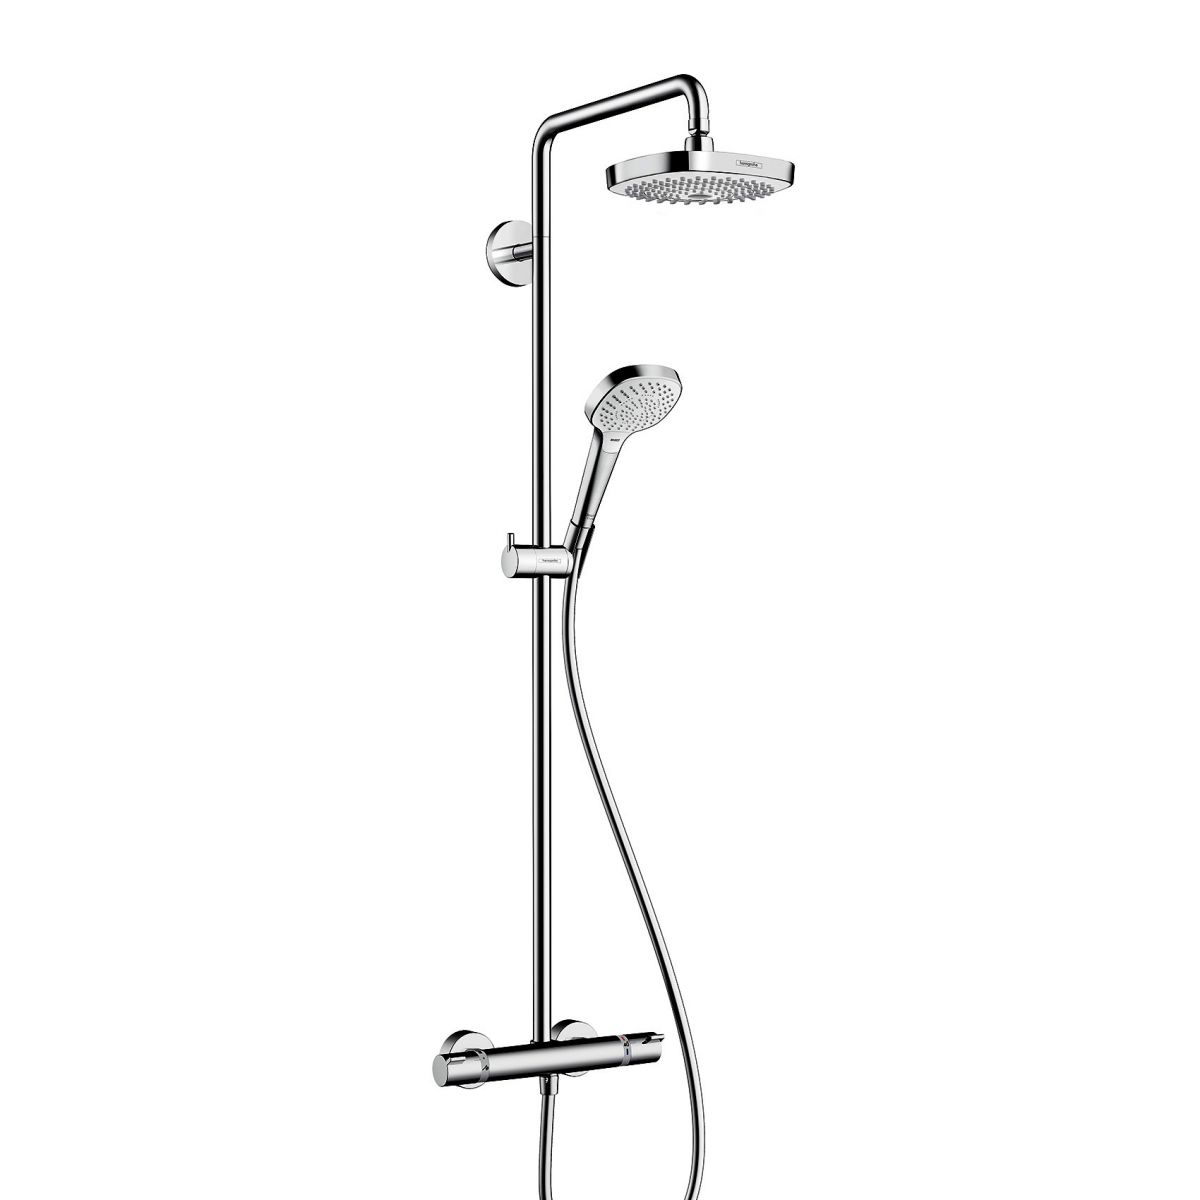 Hansgrohe Croma 2jet Hansgrohe Croma Select E 180 2jet Showerpipe Set